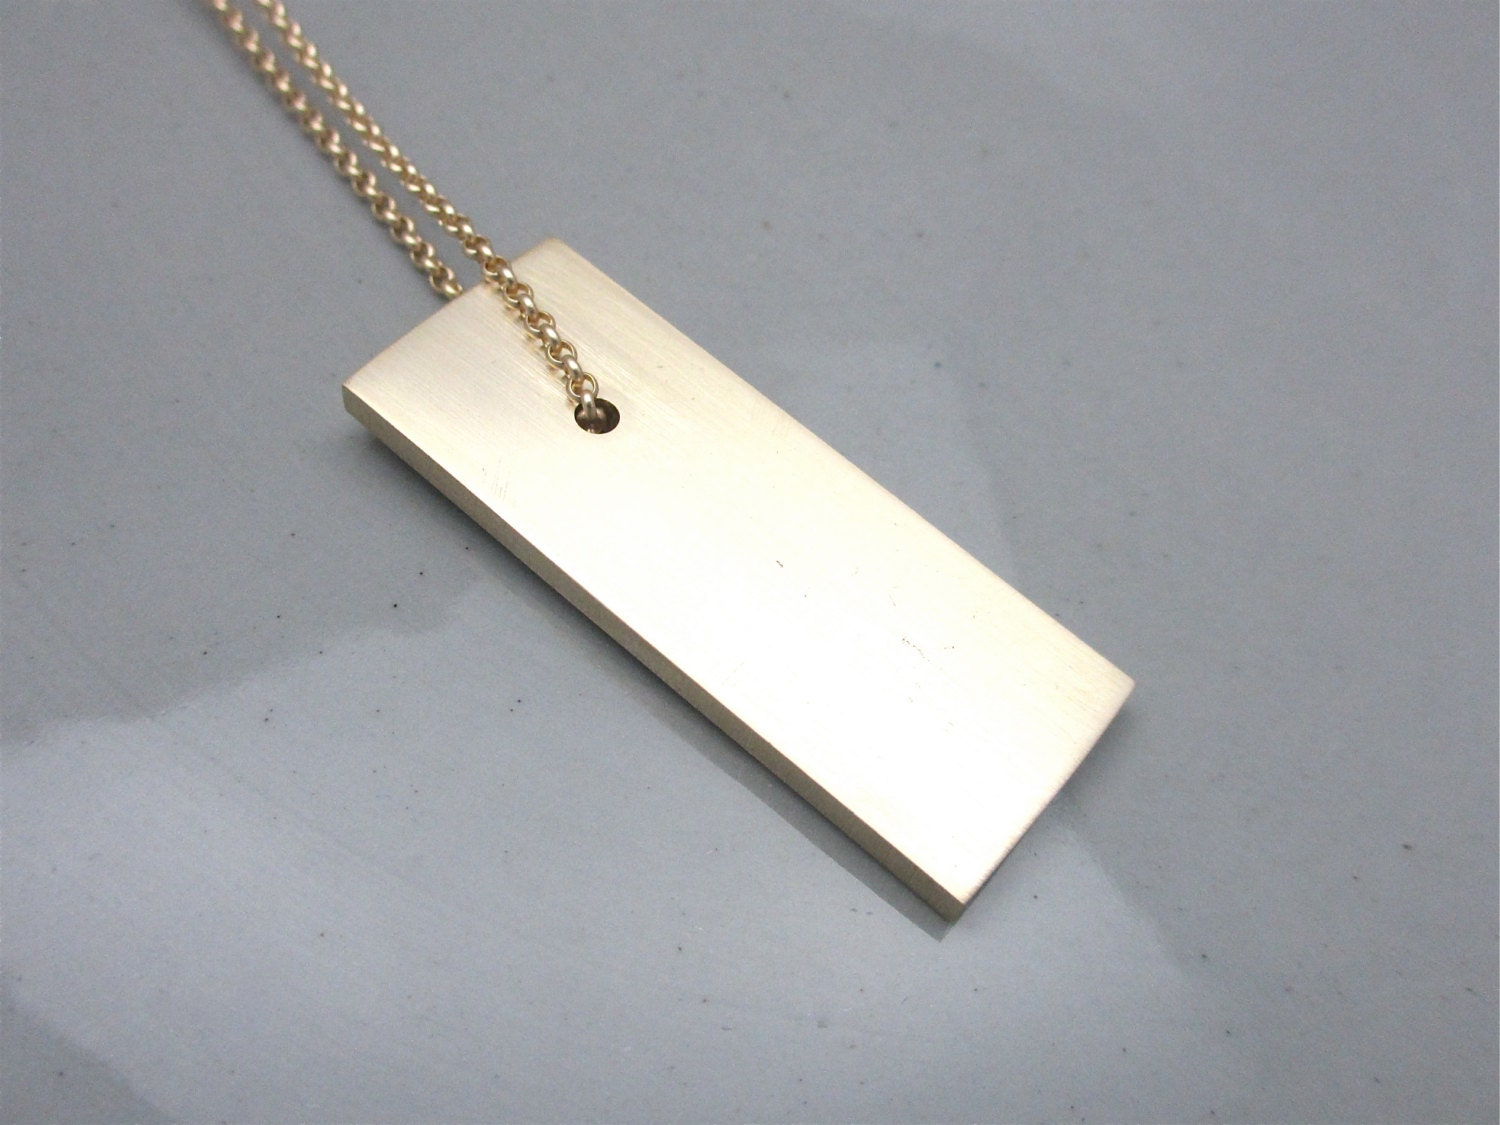 Minimalist Necklace Industrial Necklace Brass Pendant Necklace